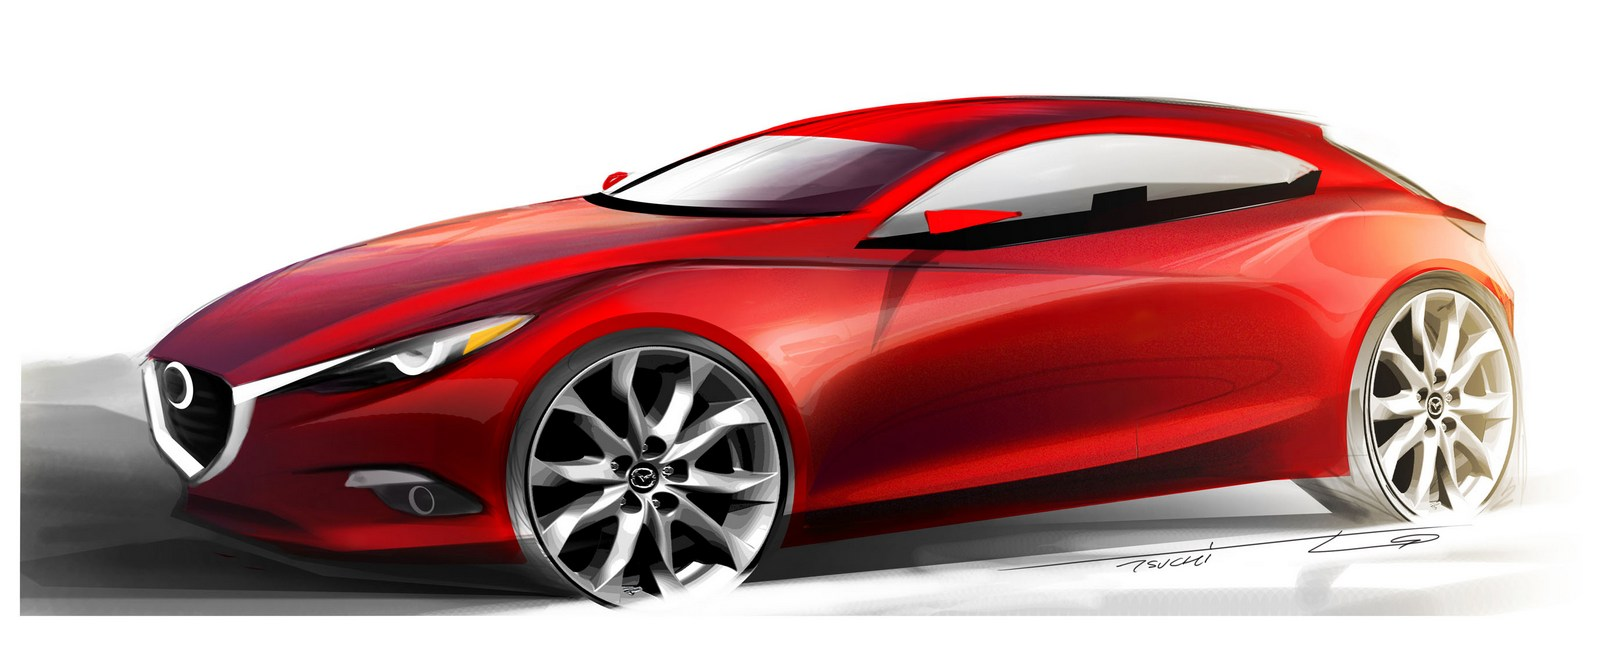 mazda3 concept reportedly headed to tokyo with an hcci engine